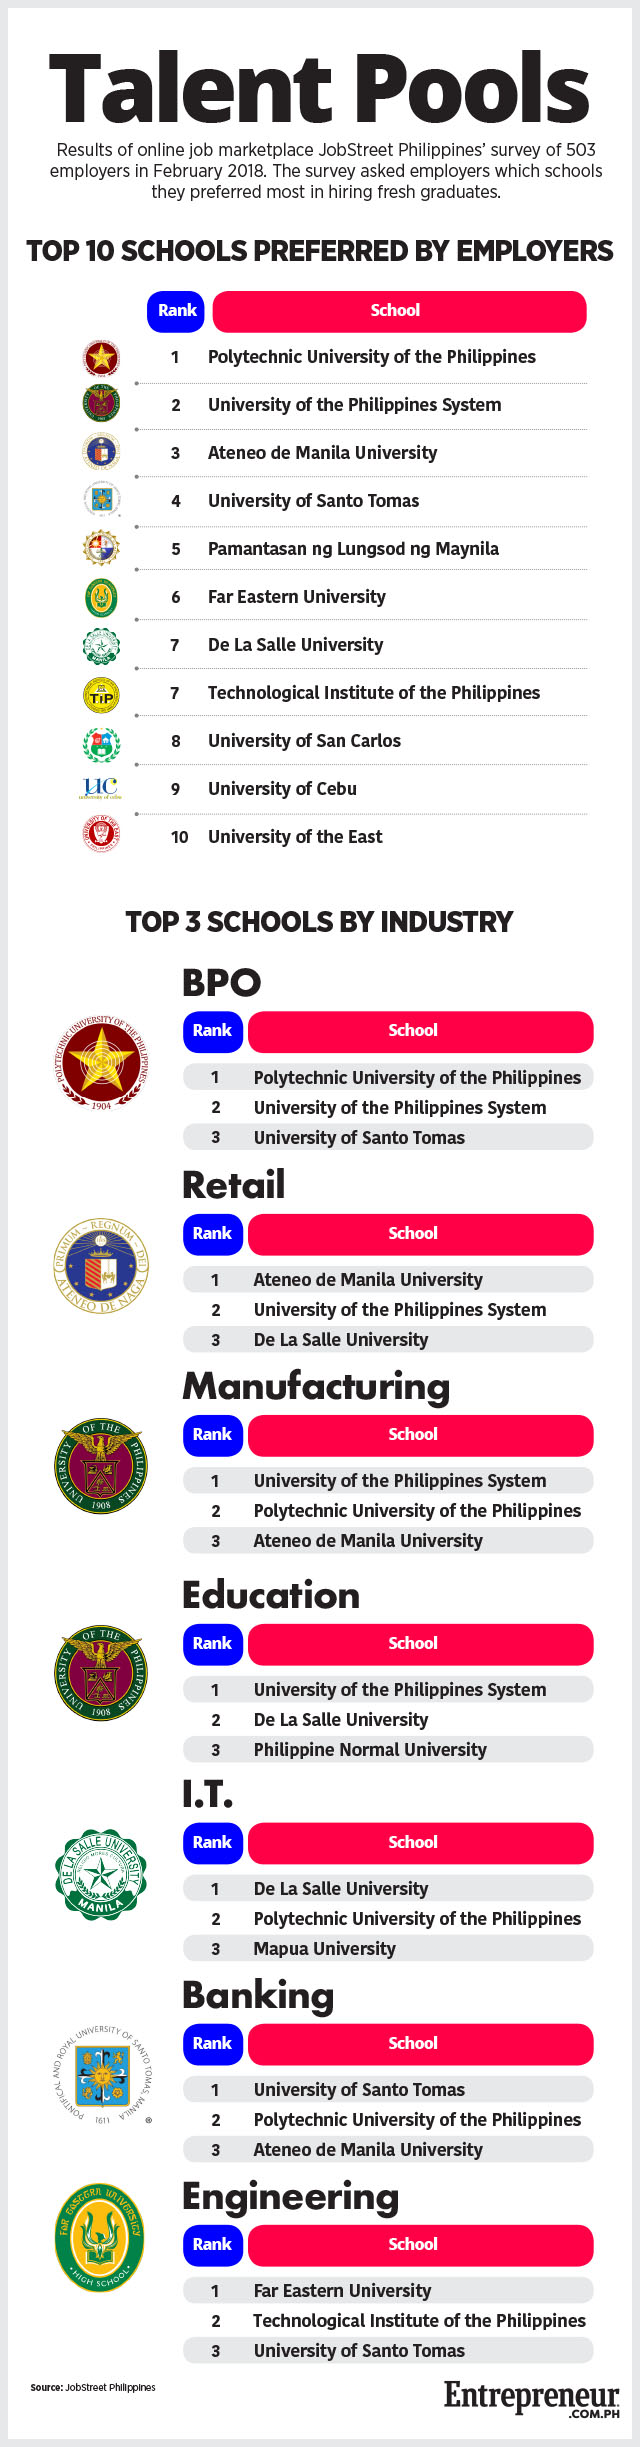 The Polytechnic University Of Philippines PUP A State Owned Higher Educational Institution Topped List Most Preferred Schools By Employers